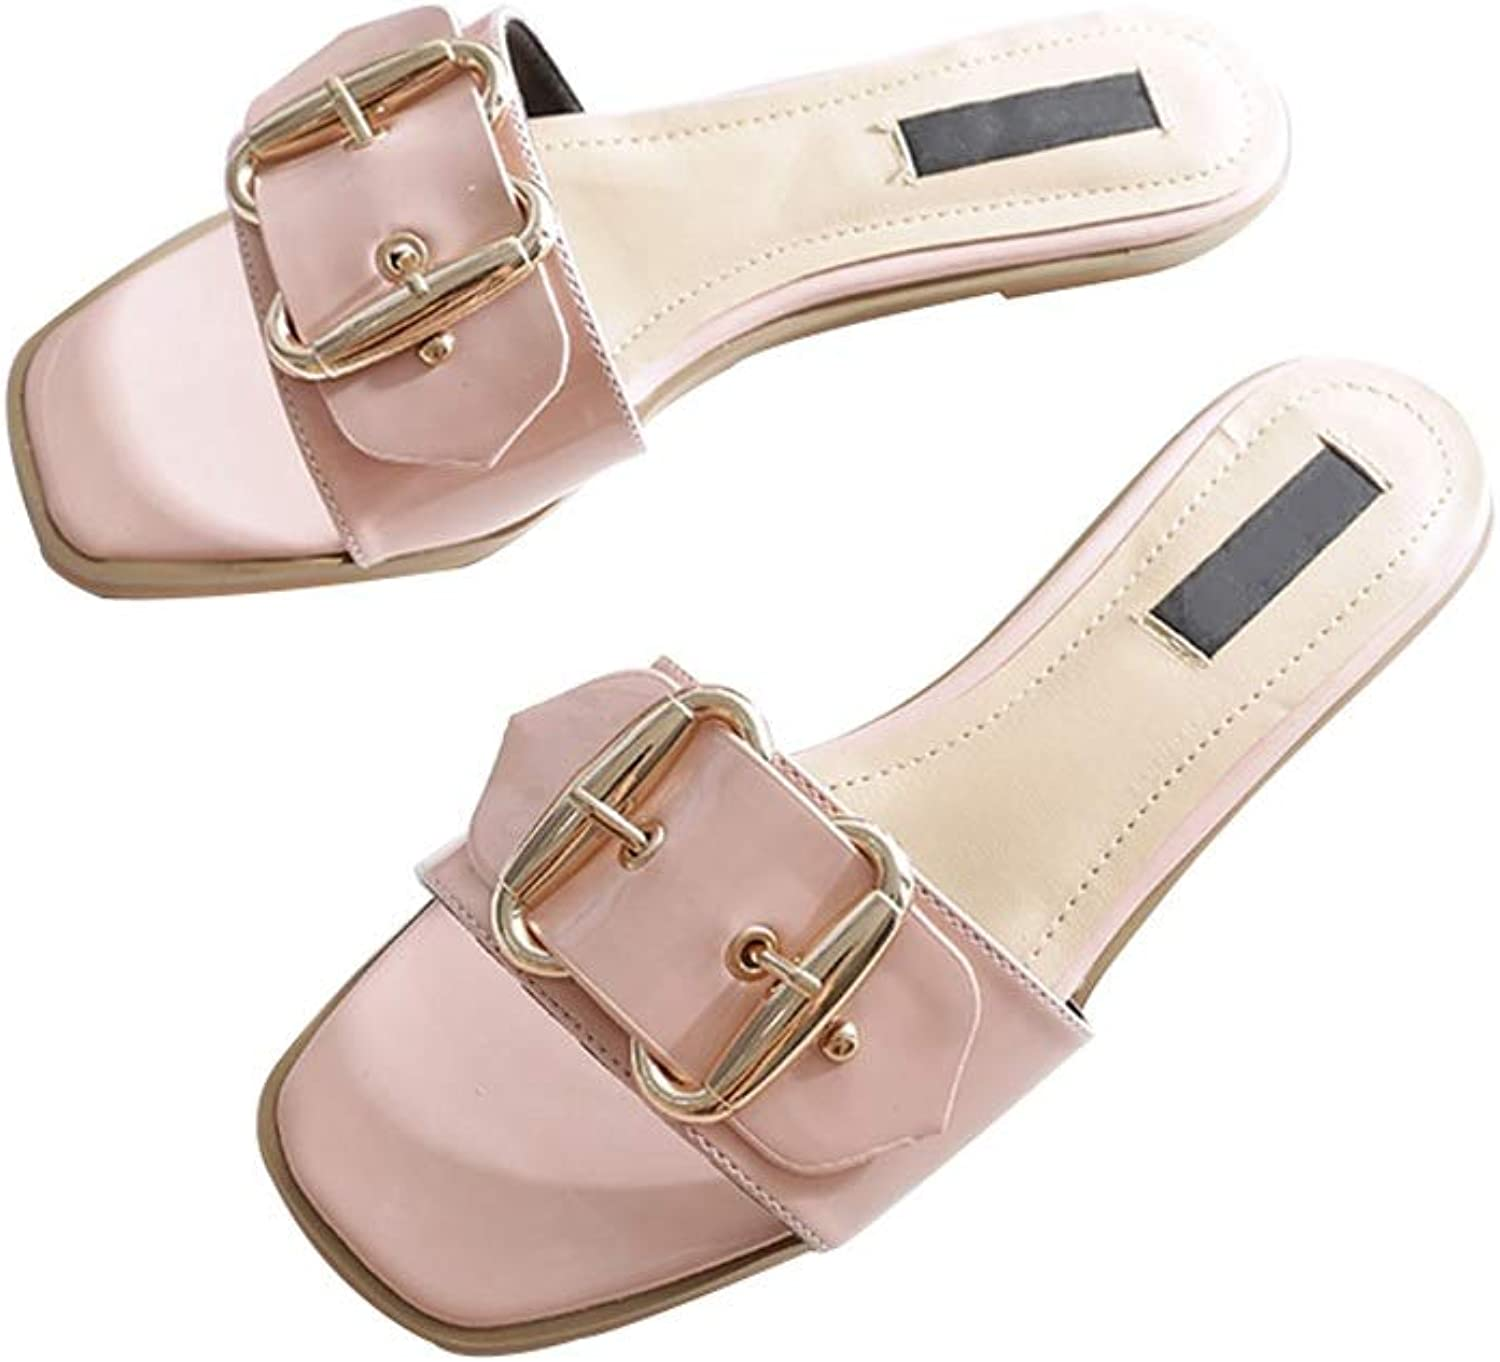 Ailj Women's Summer Sandals, Large Size Flat Sandals with Metal Buckle Outdoor Flat Slippers 2 colors